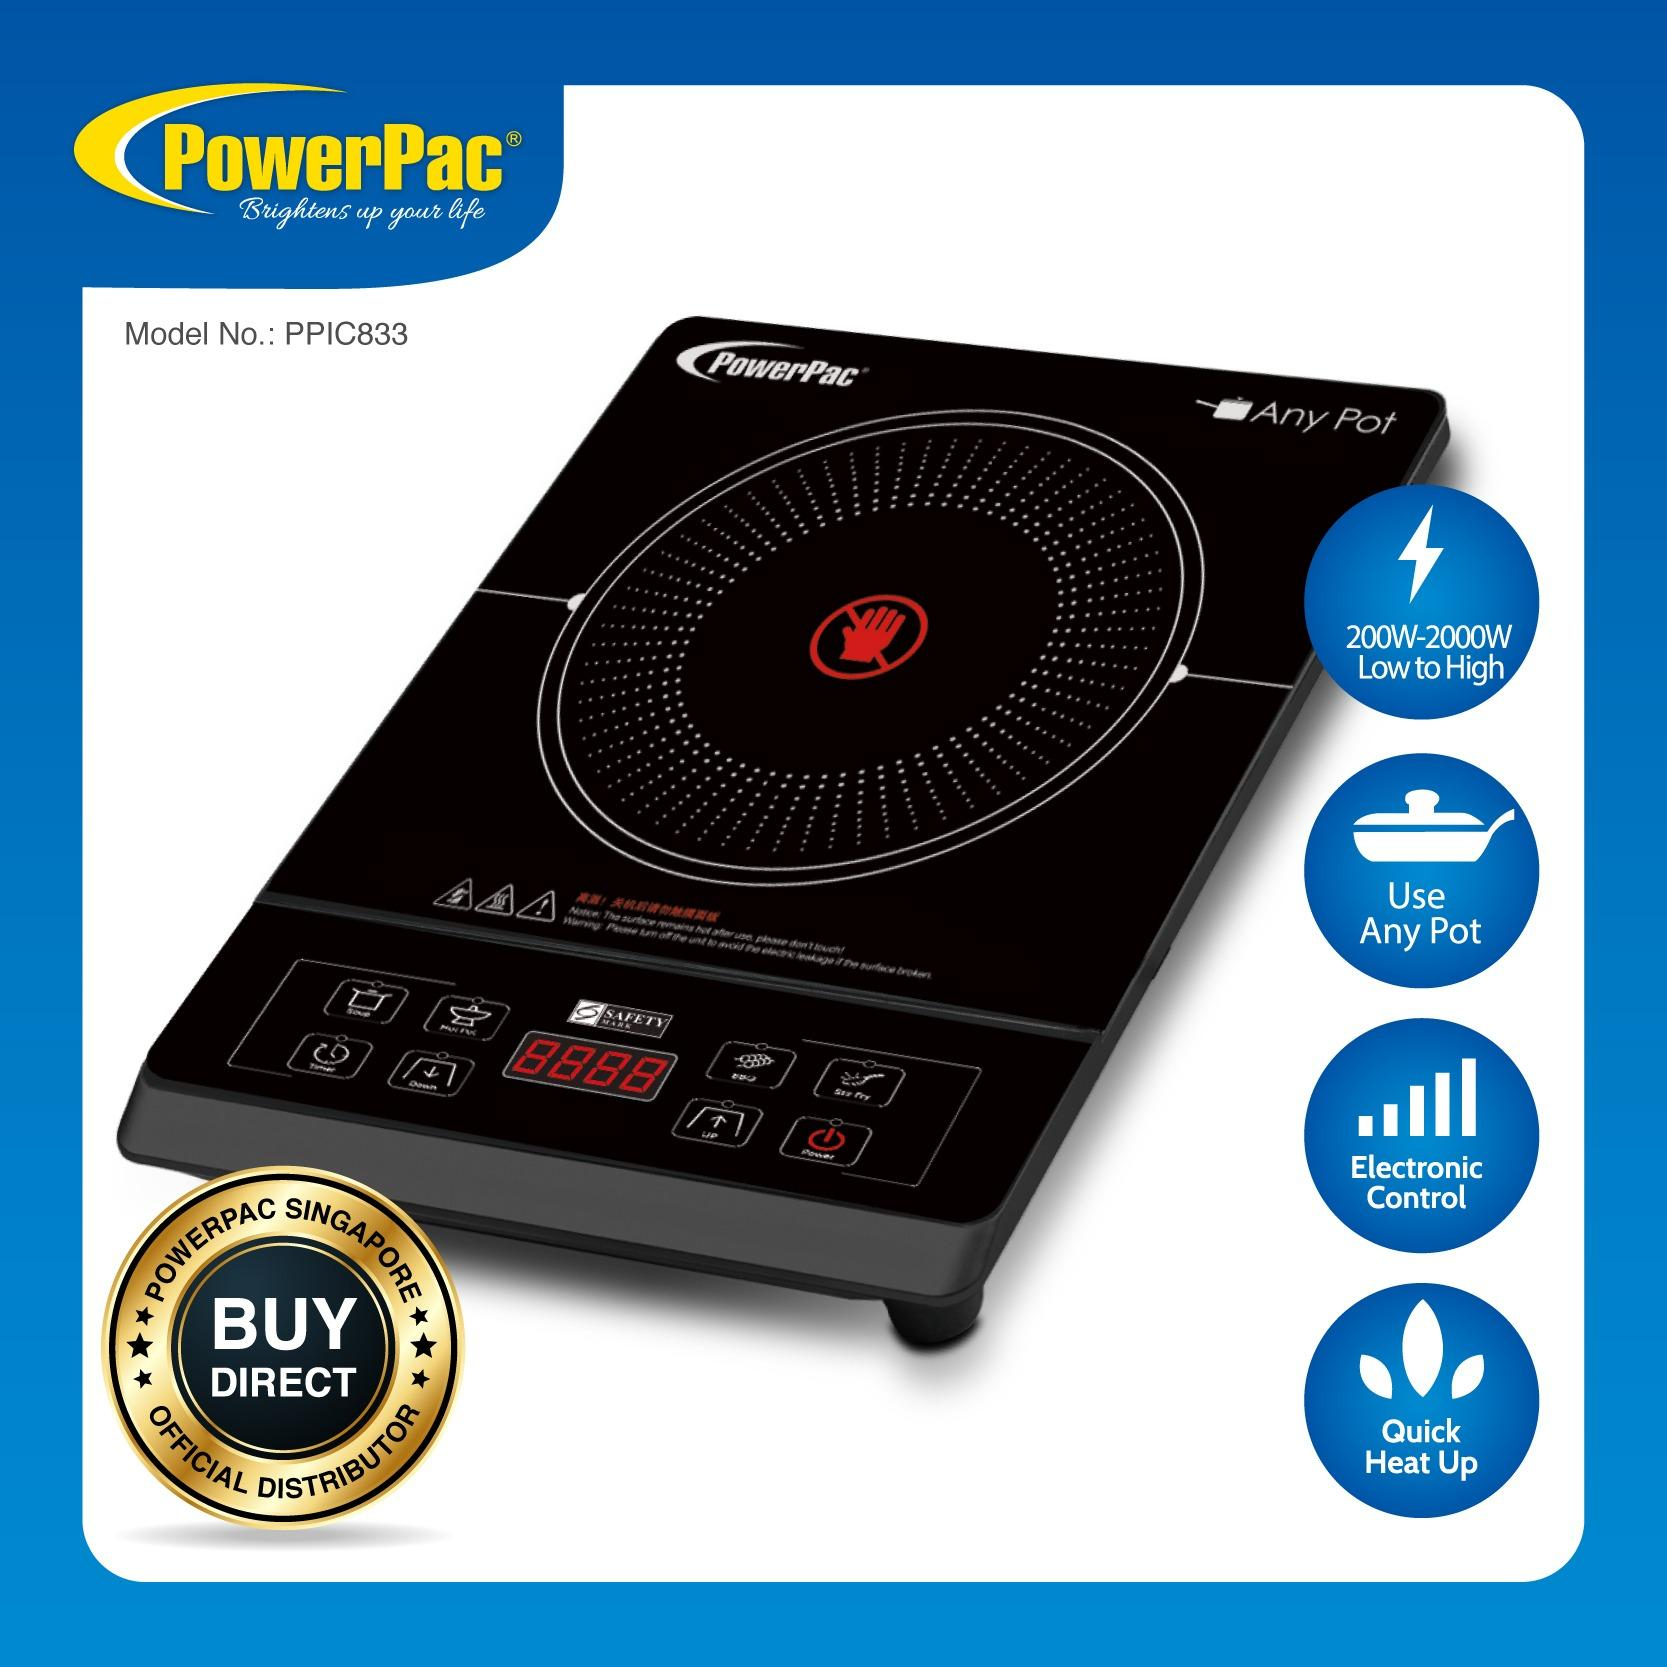 Promo Powerpac Ceramic Cooker Any Pot 2000 Watts Ppic833